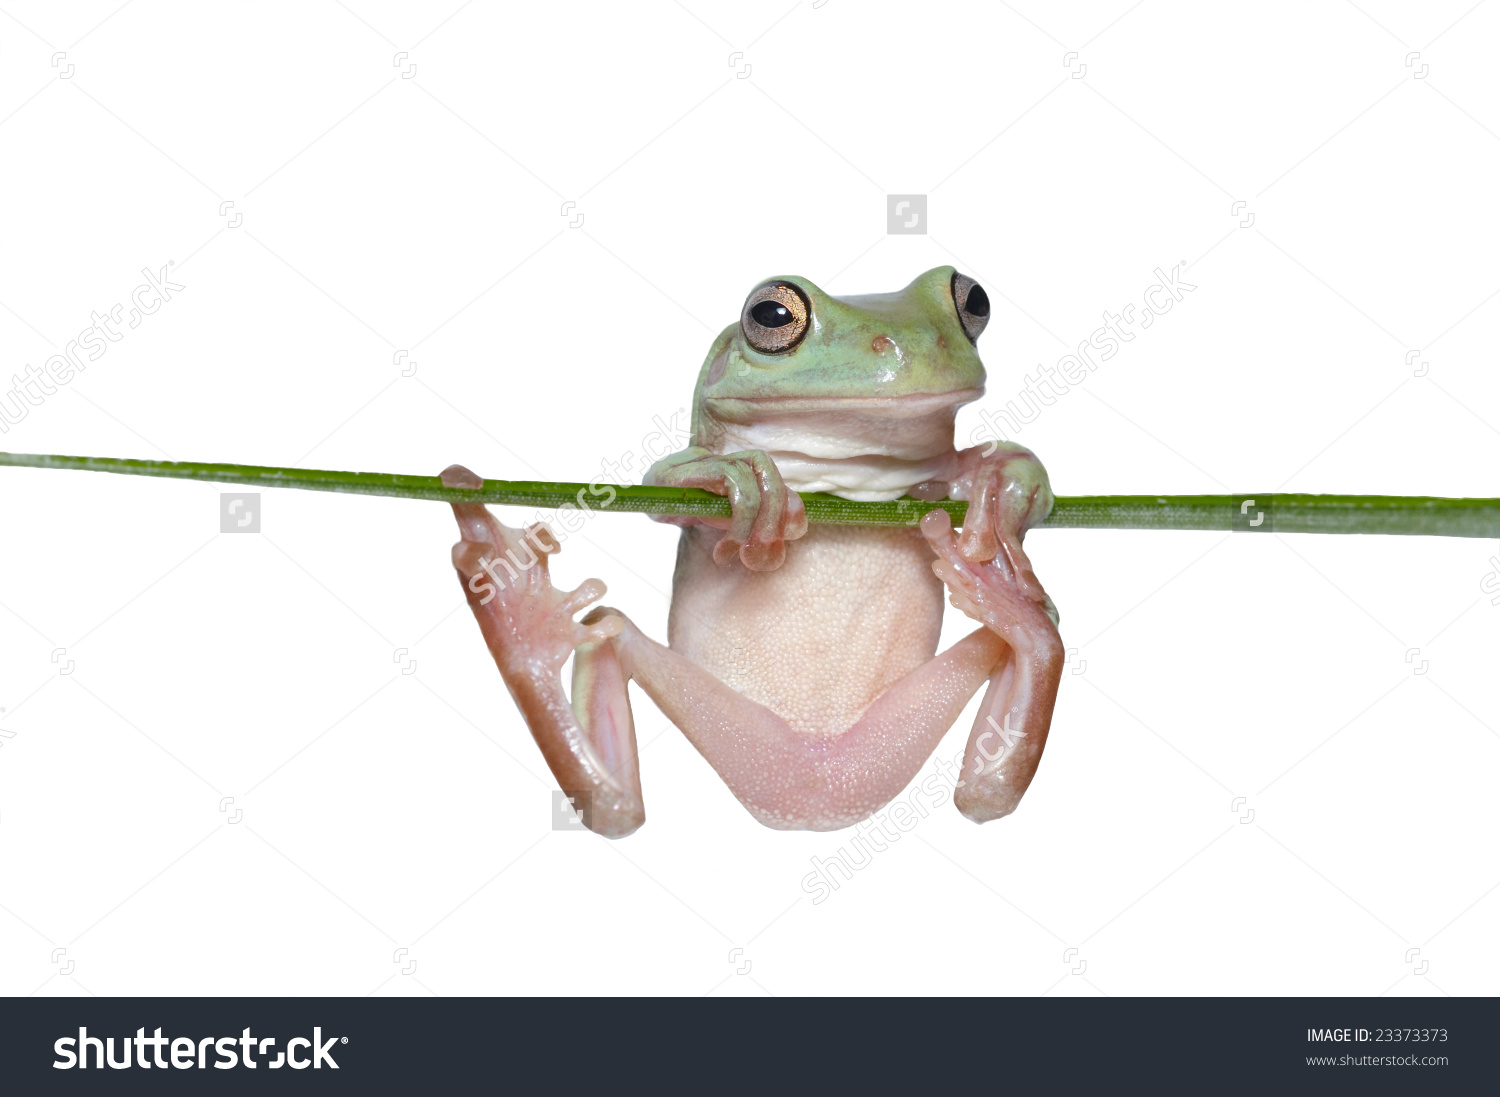 Australian Tree Frog Litoria Caerulea Hang Stock Photo 23373373.